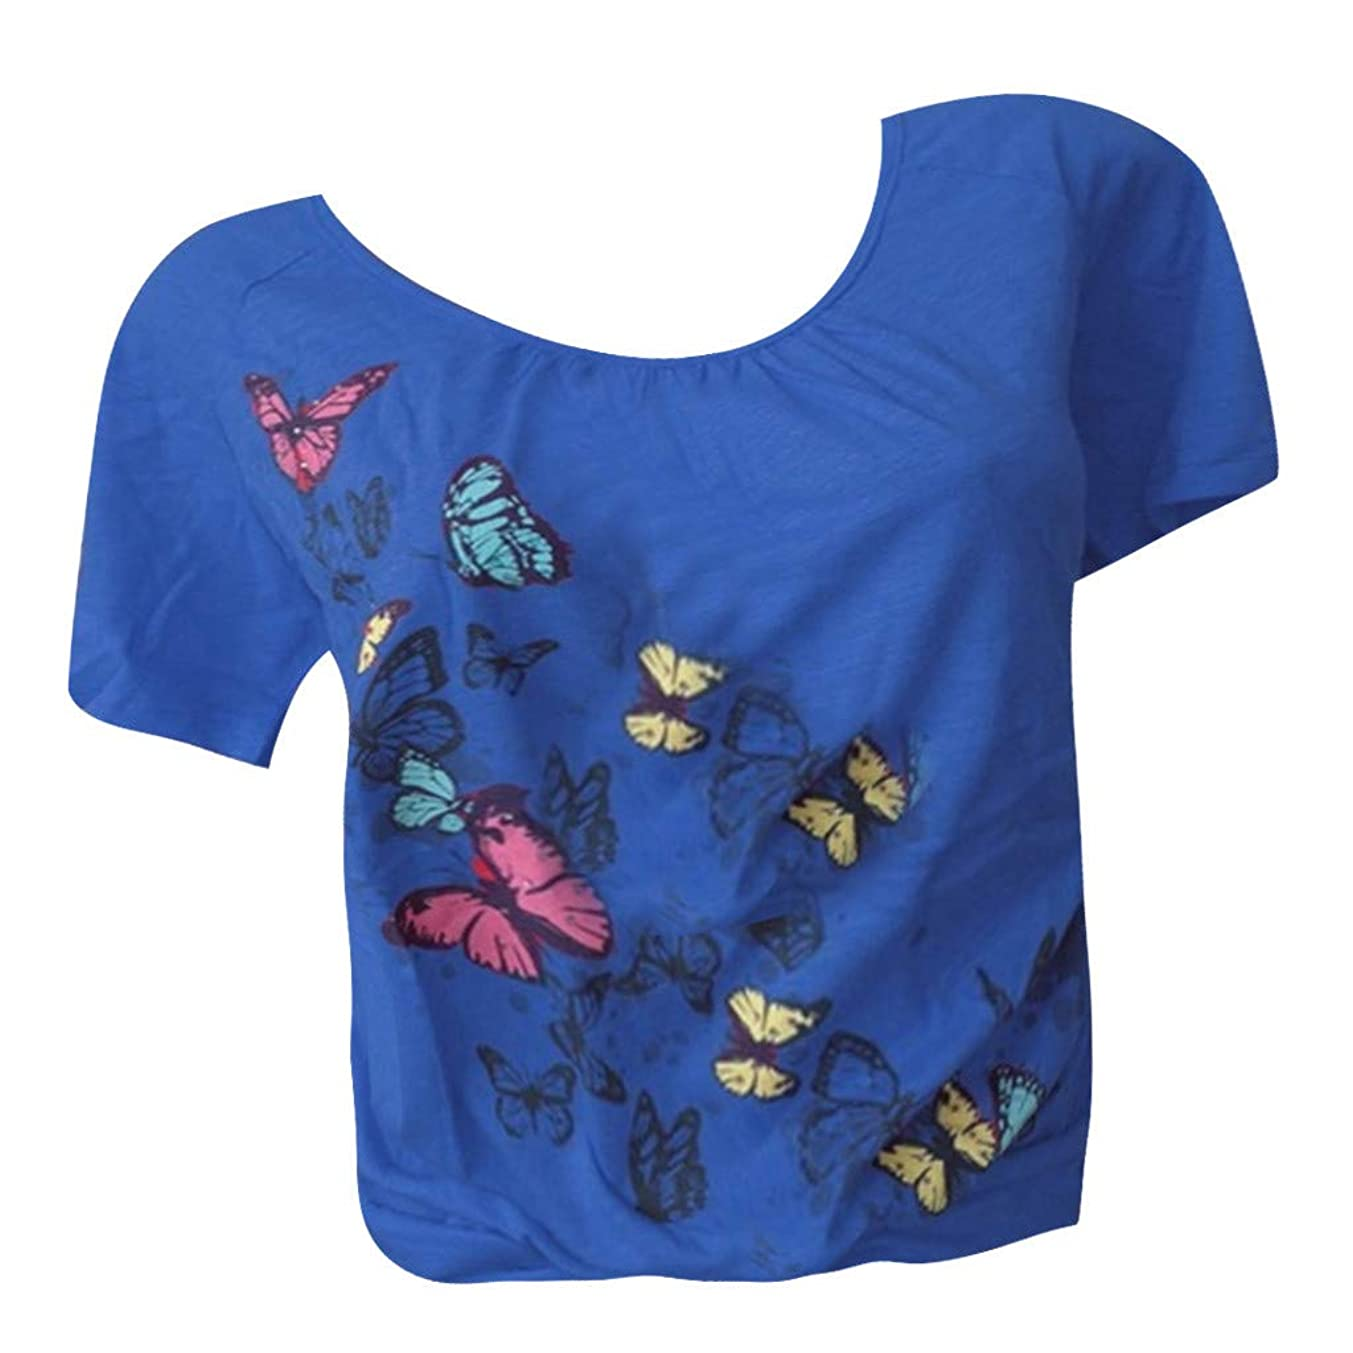 Short Sleeve Tee Blouse for Women,Amiley Womens Butterfly Prnt Round Neck Short Sleeve Summer Soft T Shirts Tops S-5XL